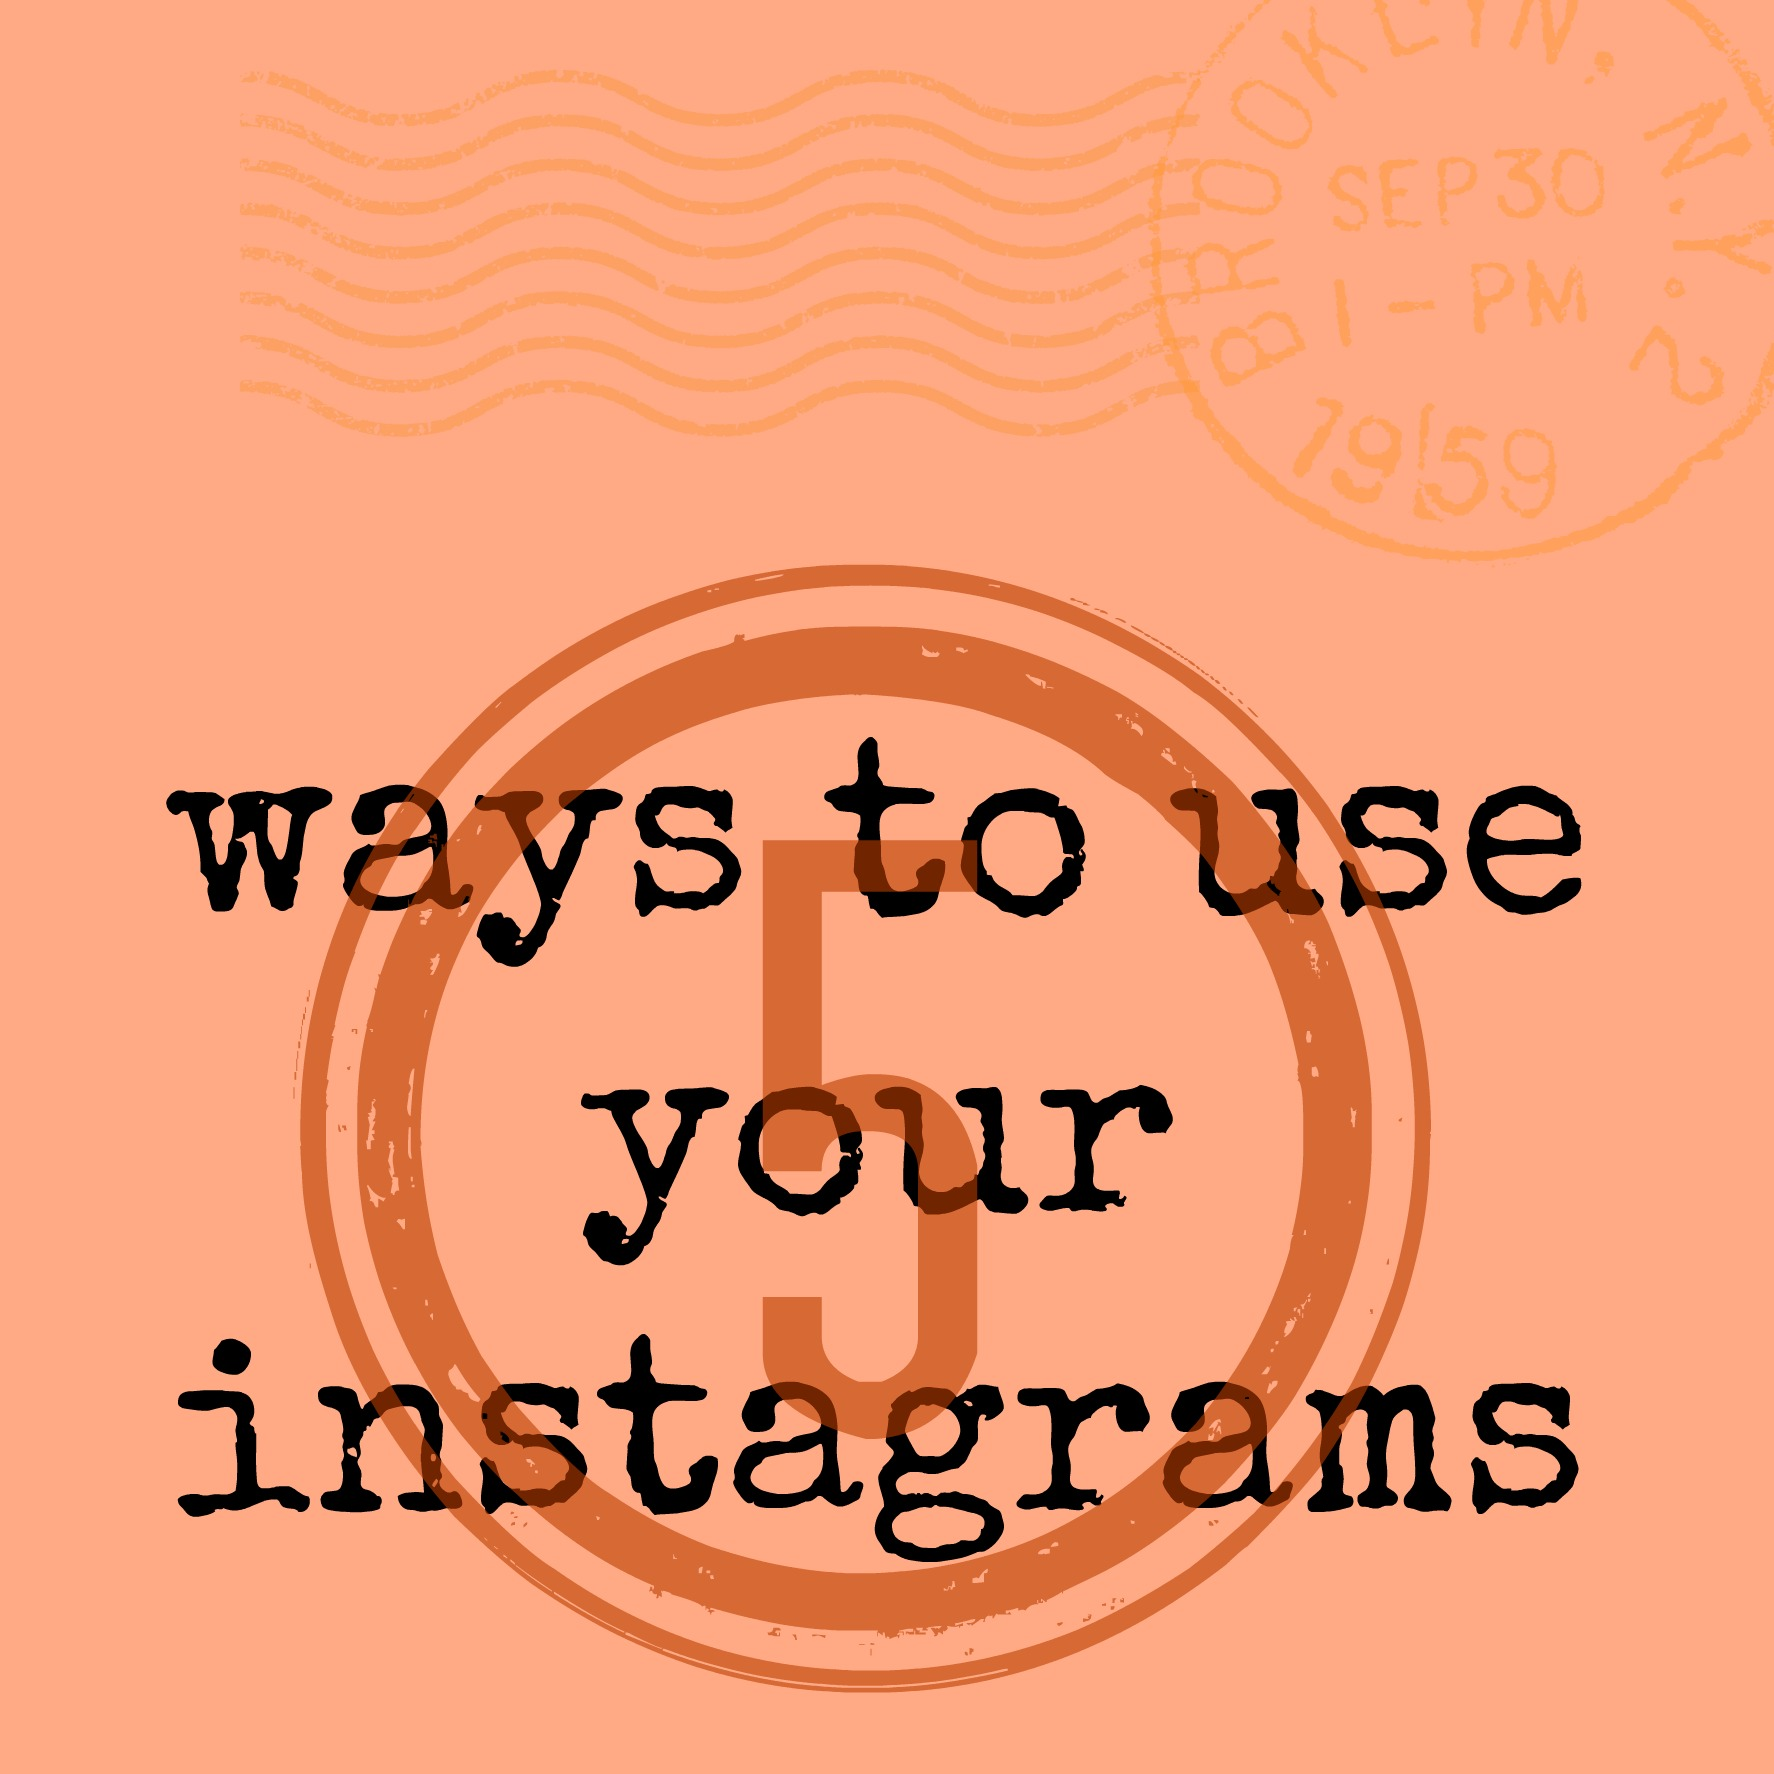 5 things to do with instagrams